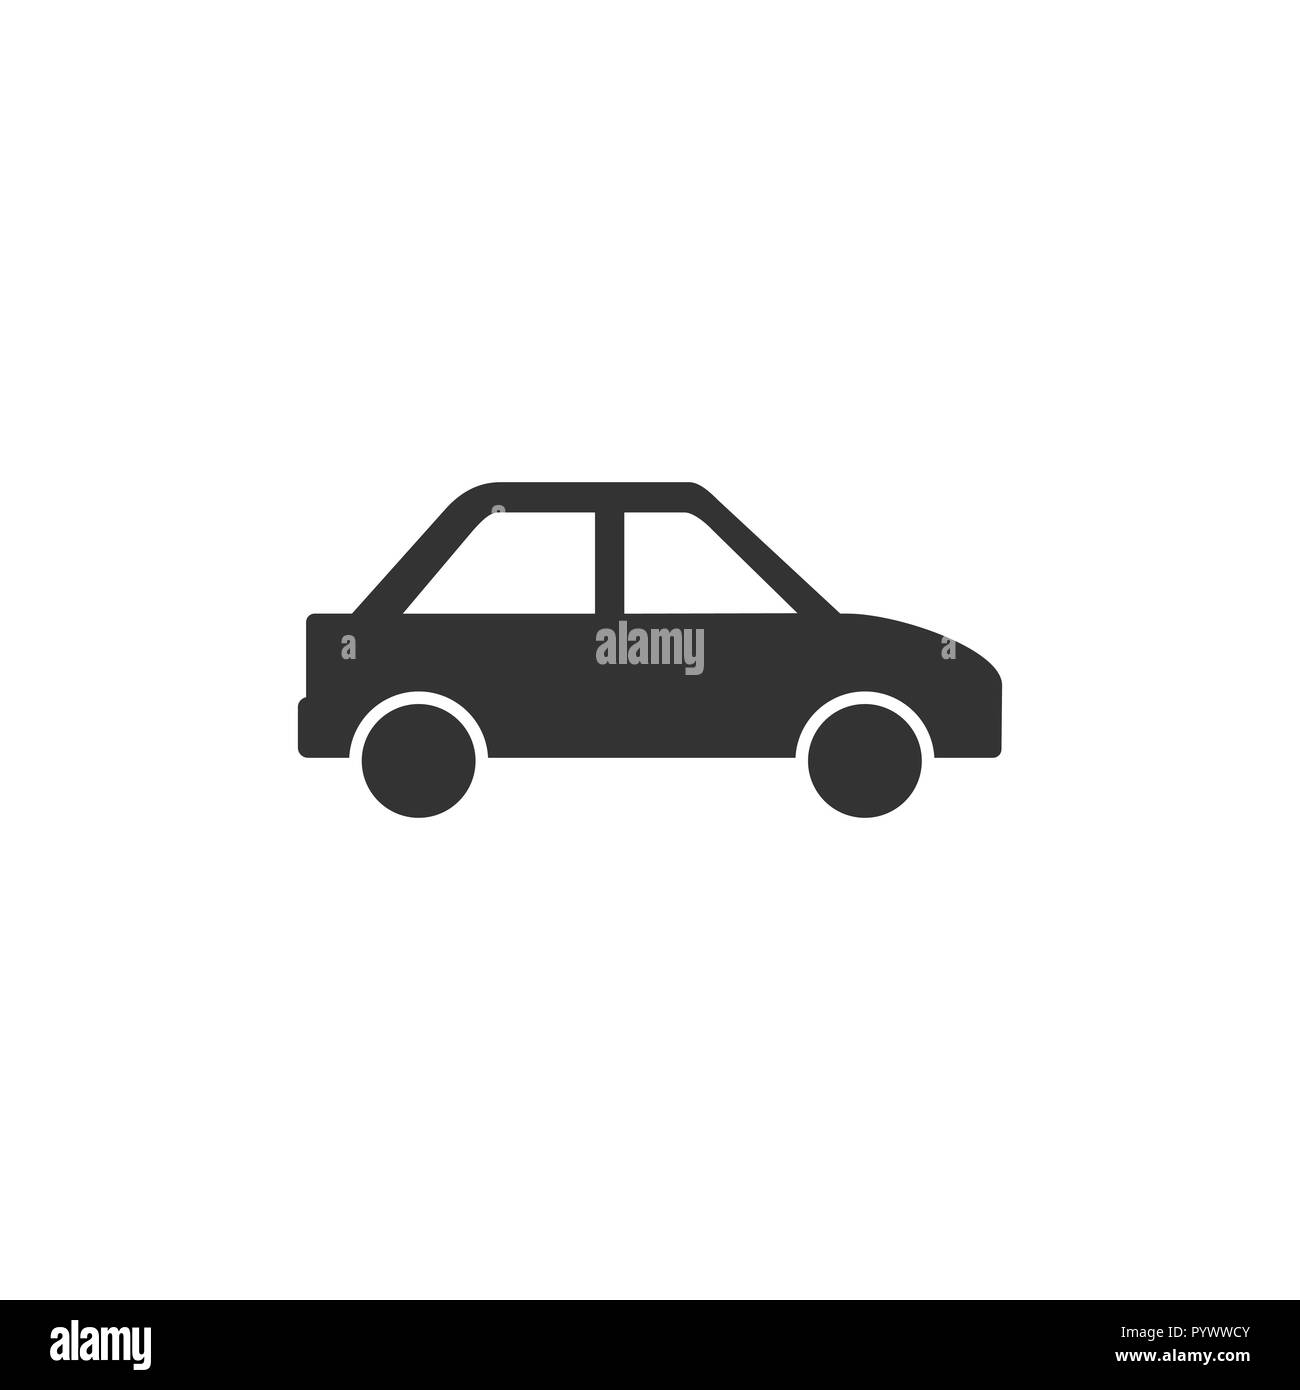 Car icon. Vector illustrations. Flat design graphic. - Stock Image